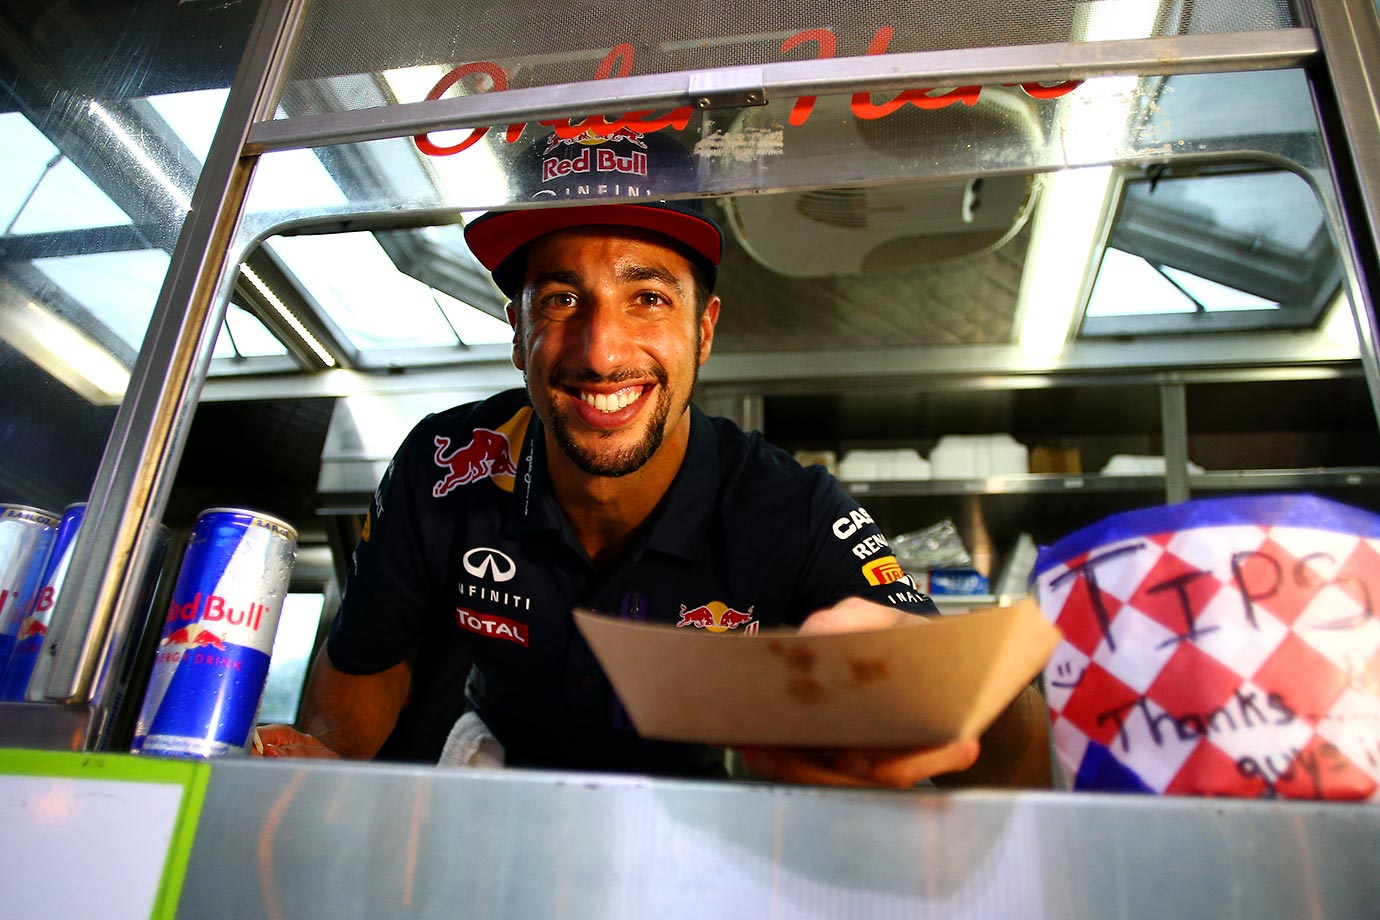 Daniel Ricciardo of Infiniti Red Bull Racing serves at a food truck during previews to the United States Formula One Grand Prix in Texas.